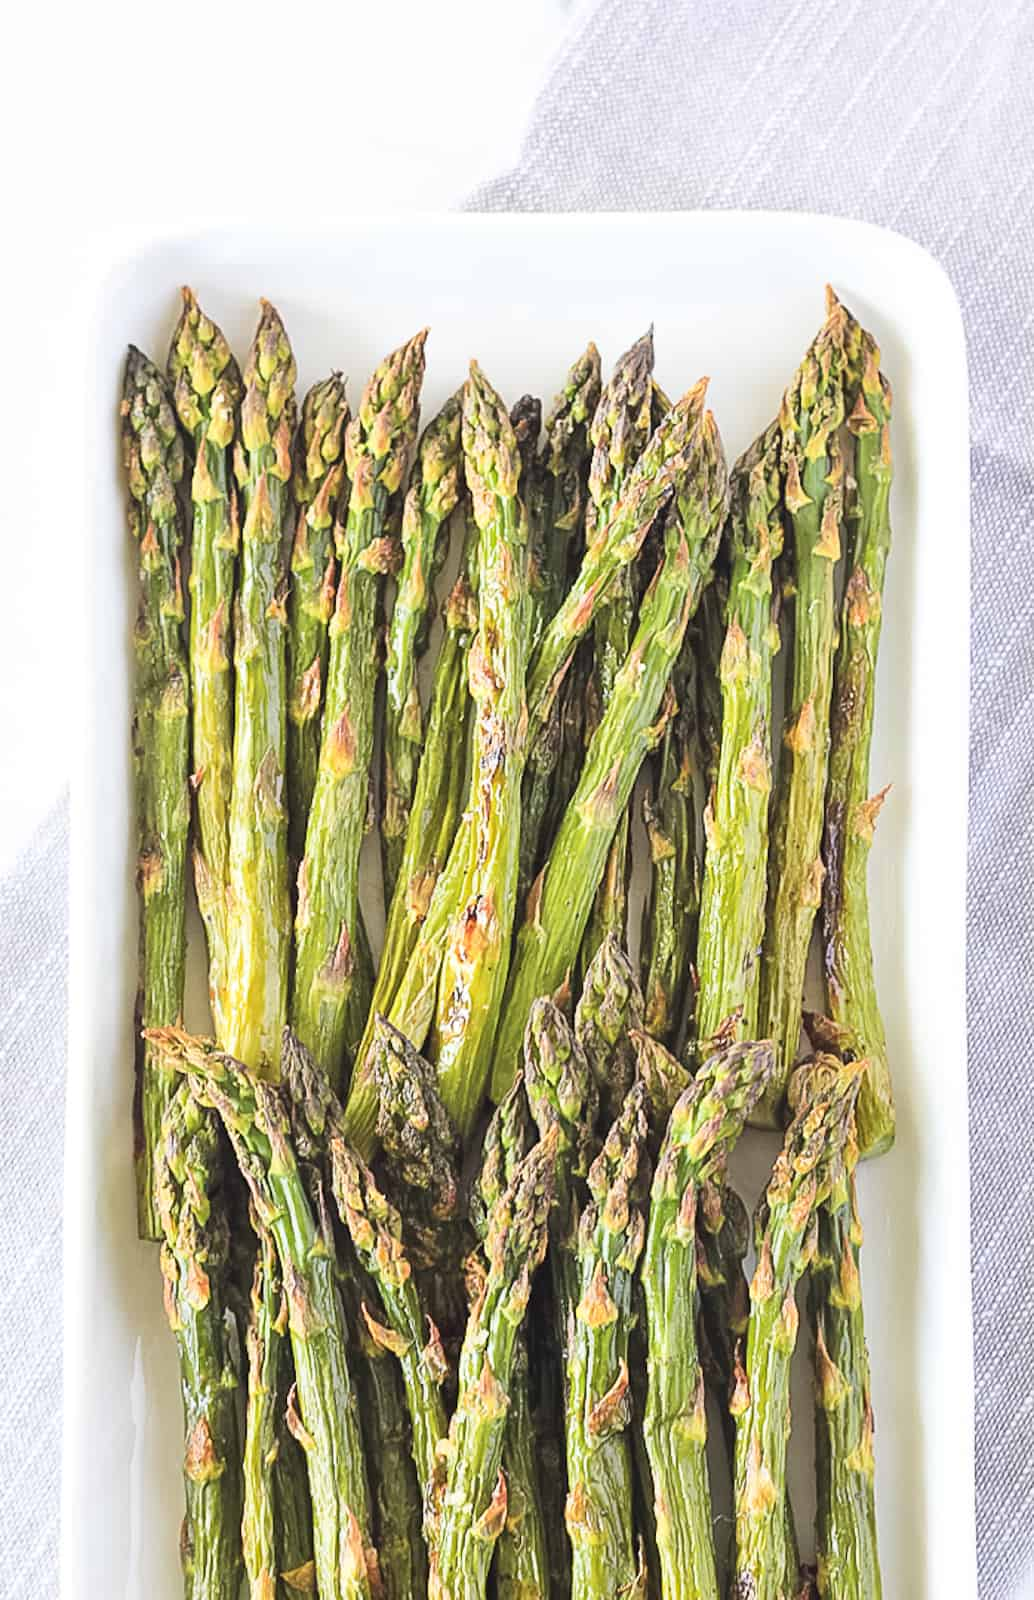 Roasted Asparagus on a white serving plate.